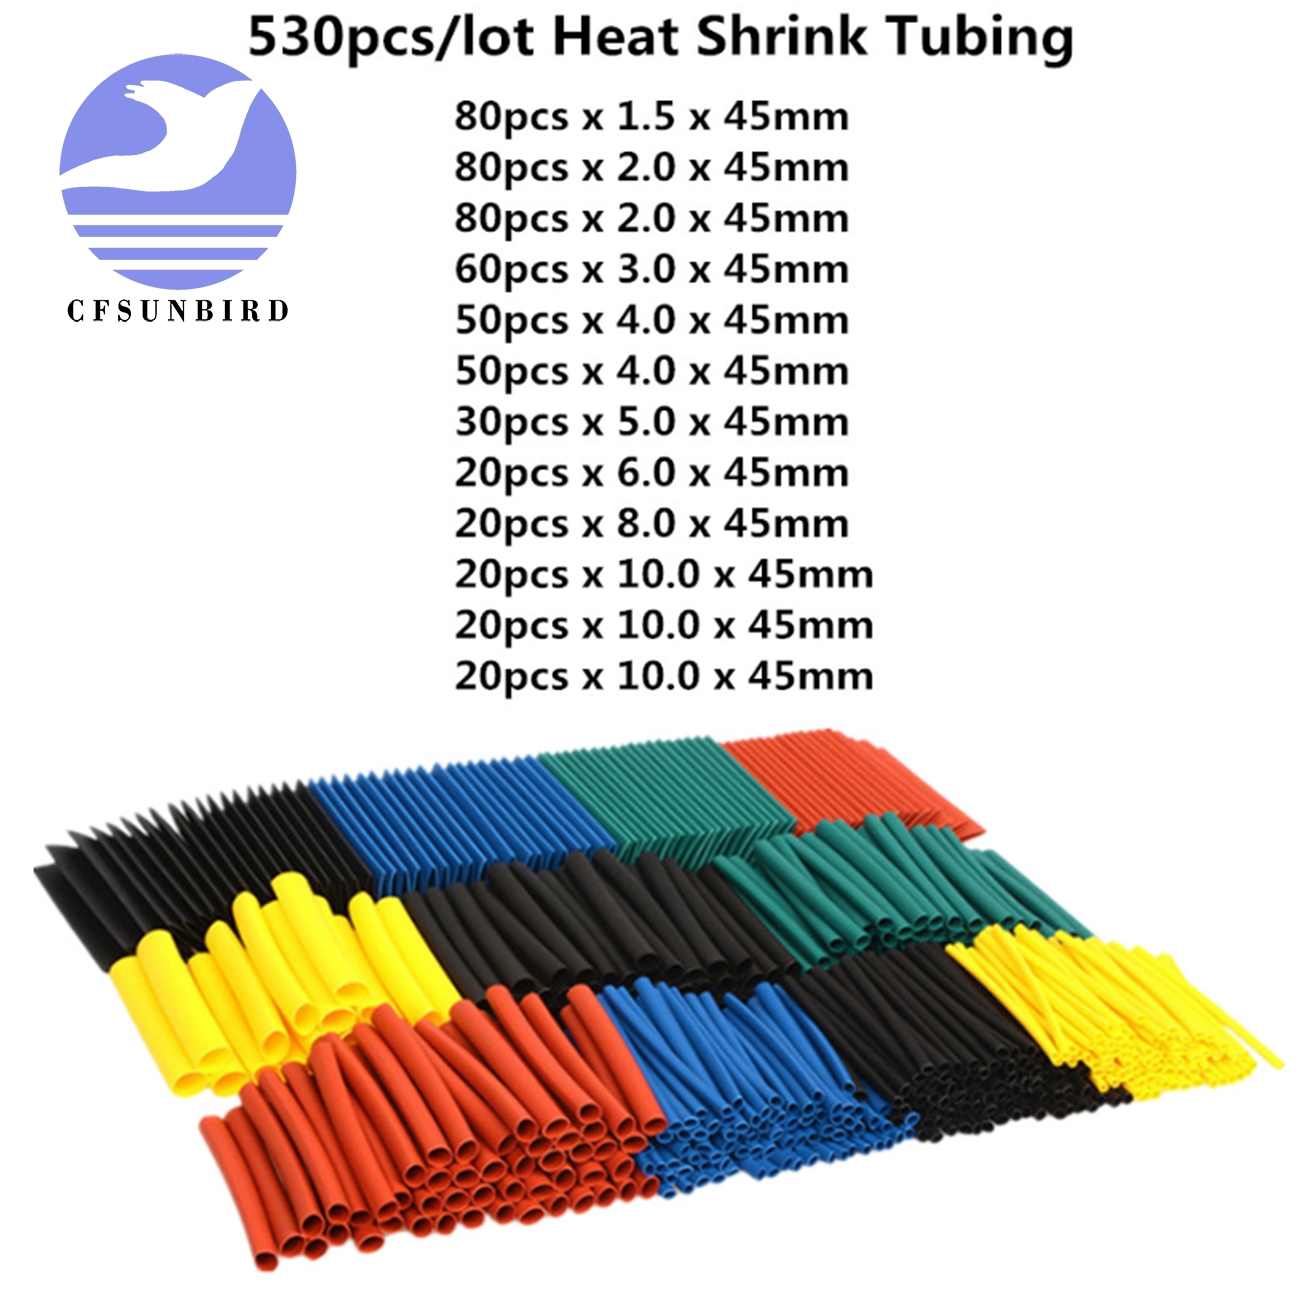 530pcs/set Sleeving Wrap Wire Car Electrical Cable Tube kits Heat Shrink Tube Tubing Polyolefin 5 Sizes Mixed Color